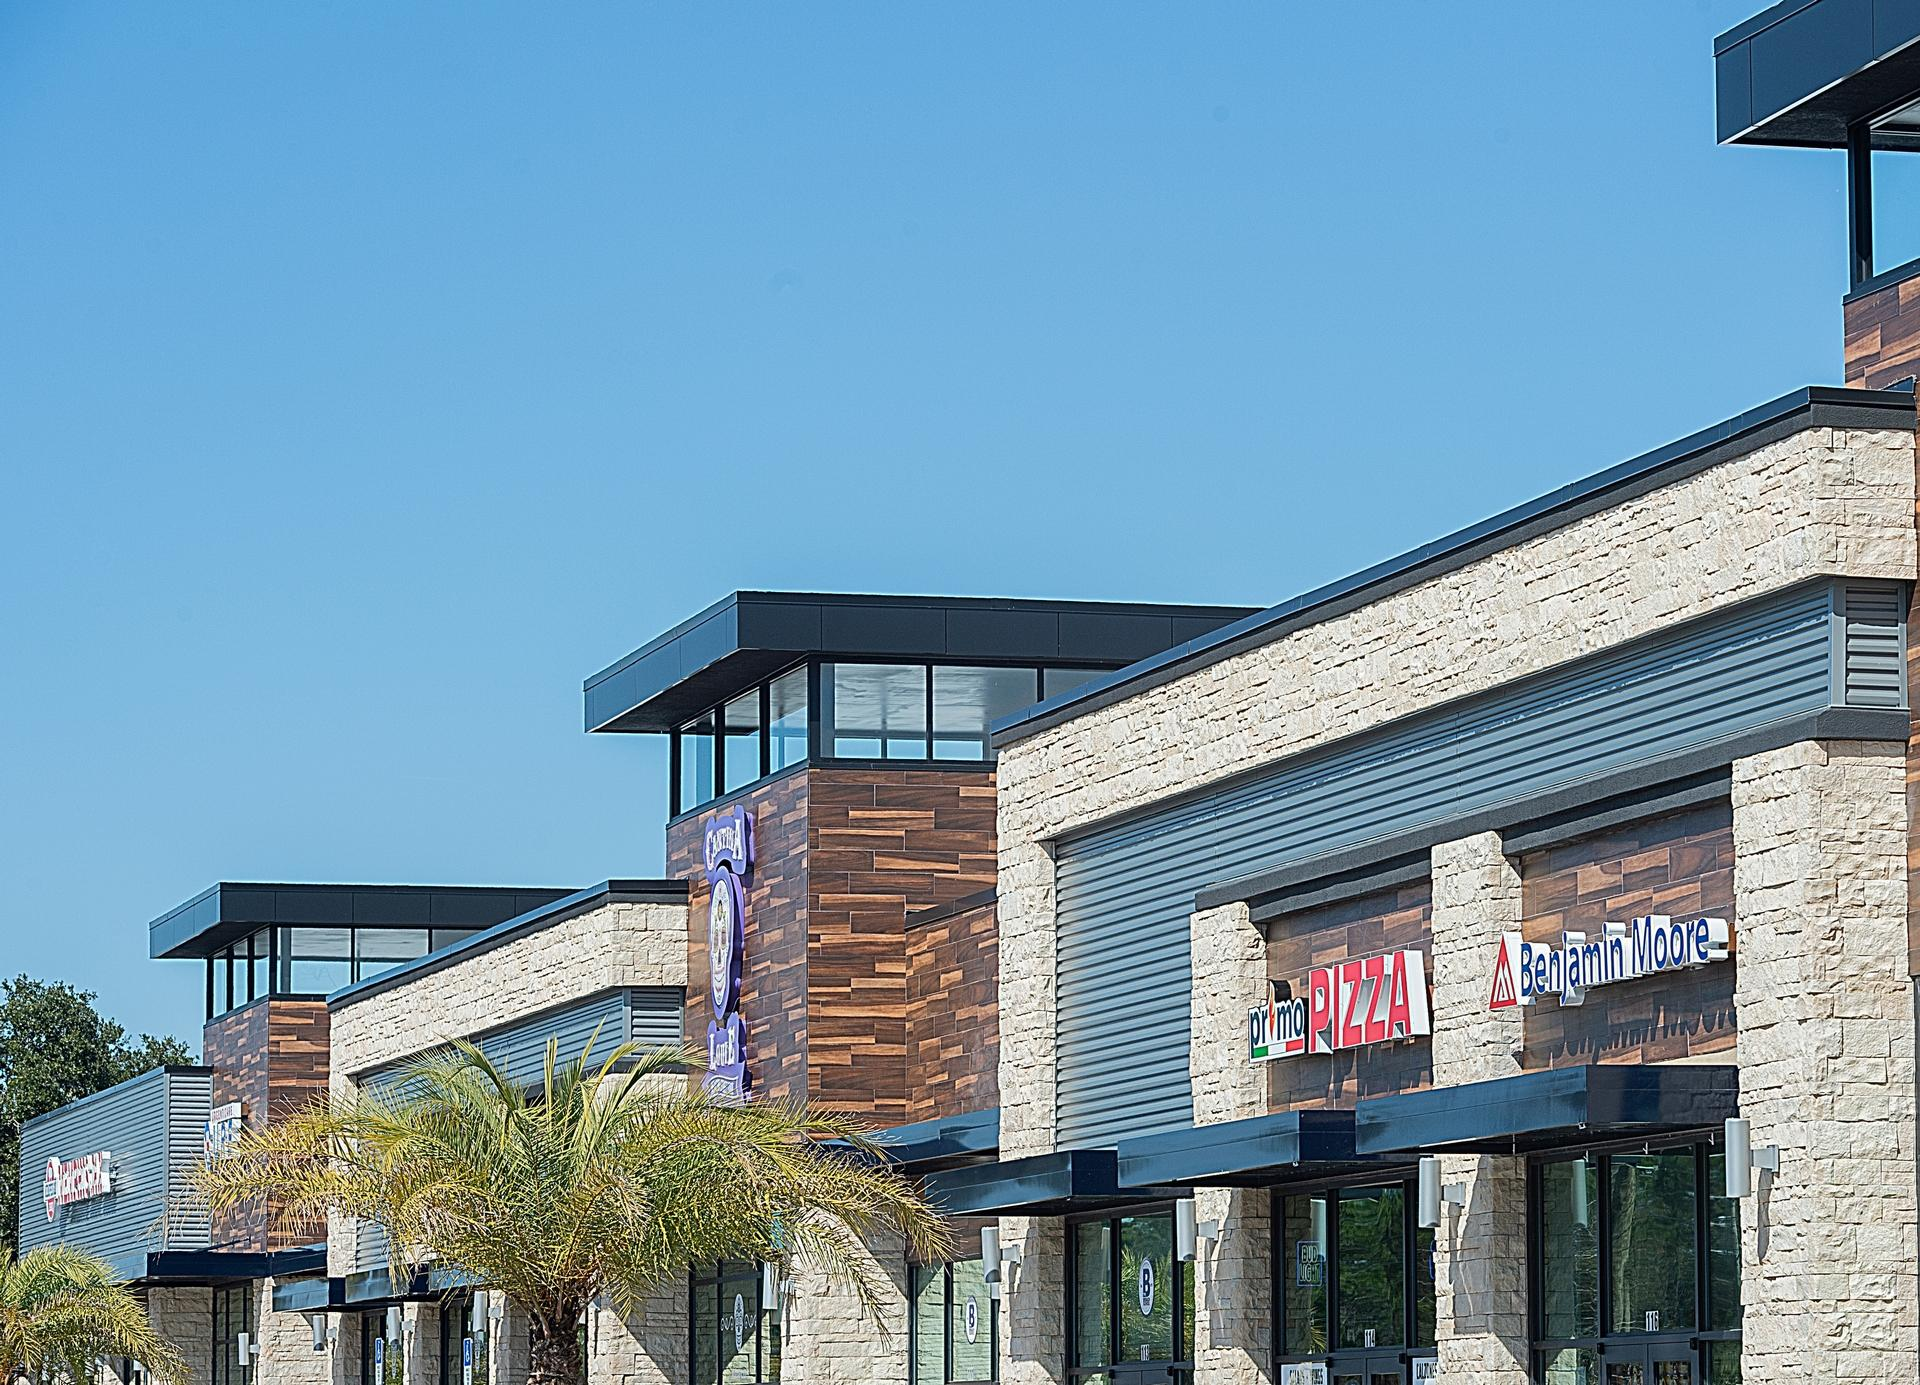 As commercial development booms in St. Johns County, balance in offerings becomes important